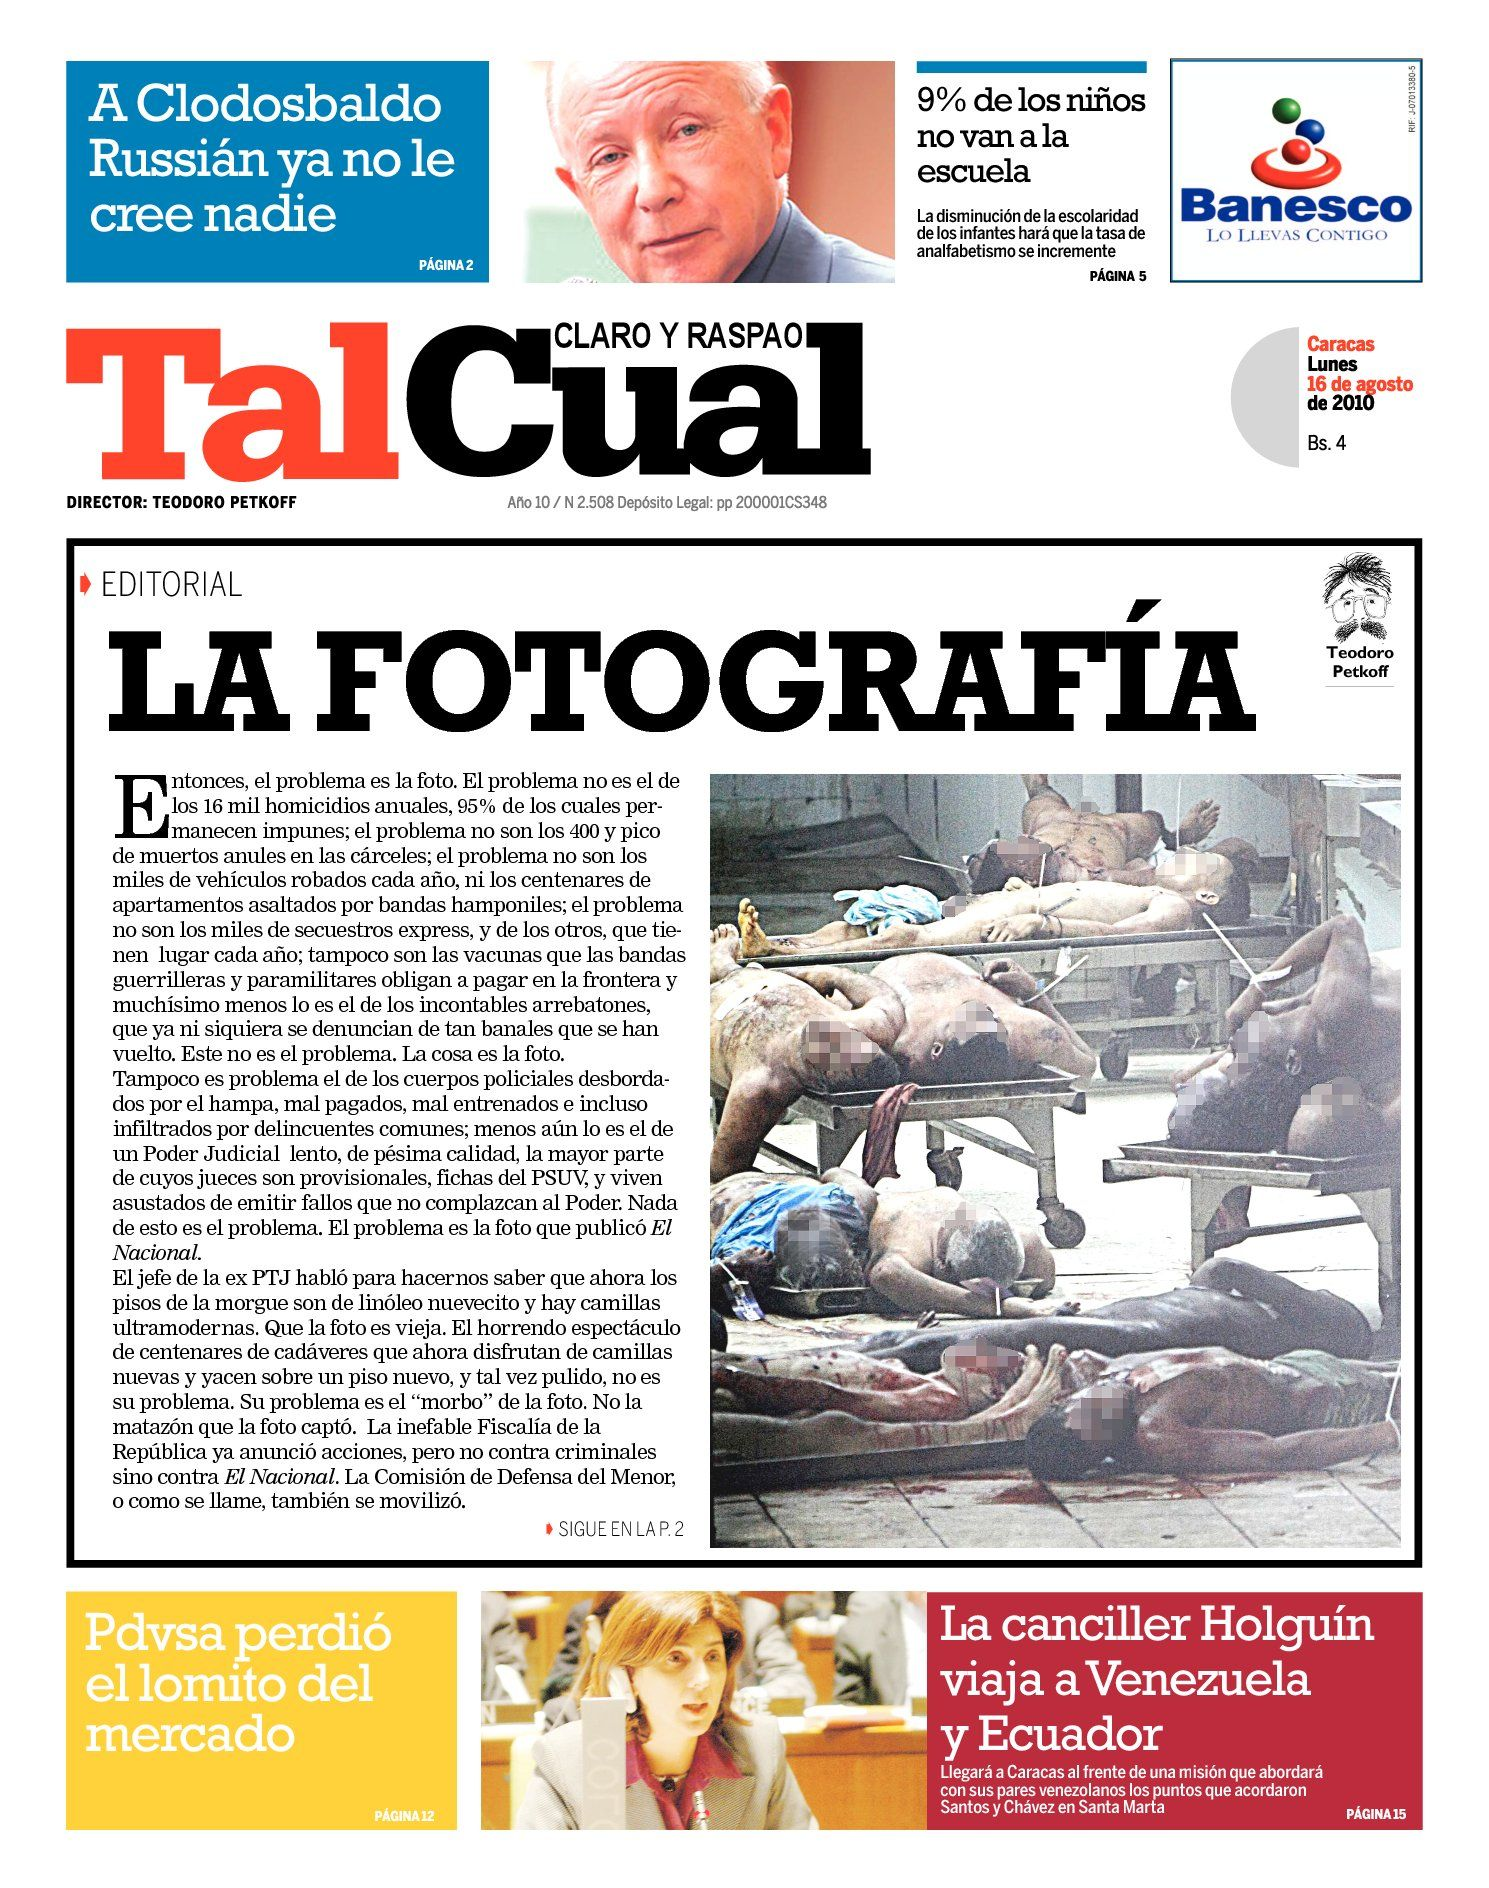 Editorial. La fotografía